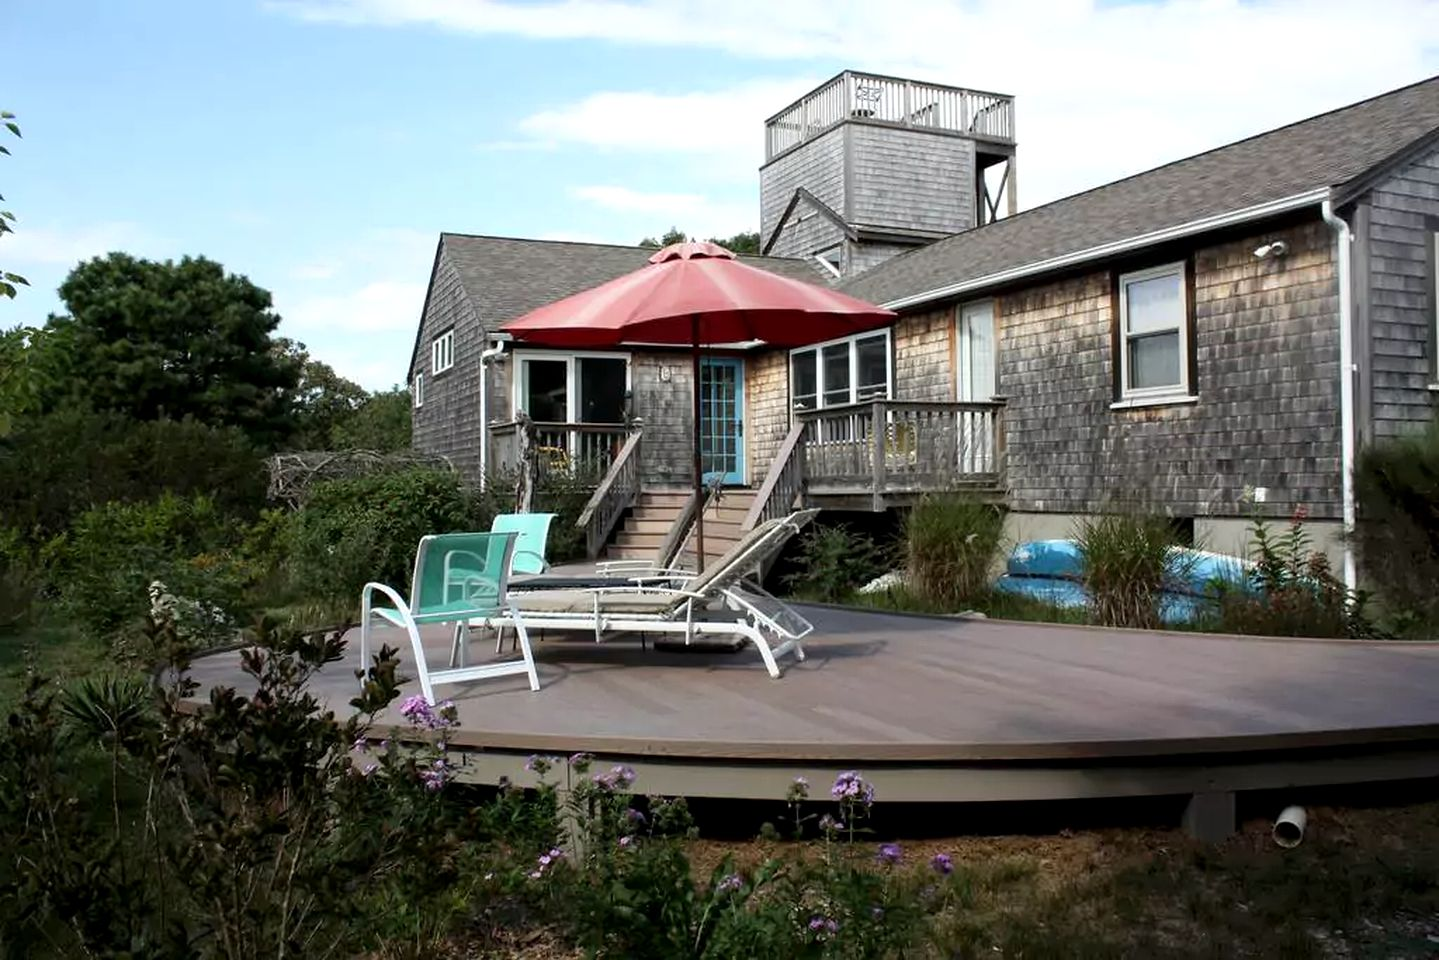 Cabin rental with private beach, Cape Cod family getaways